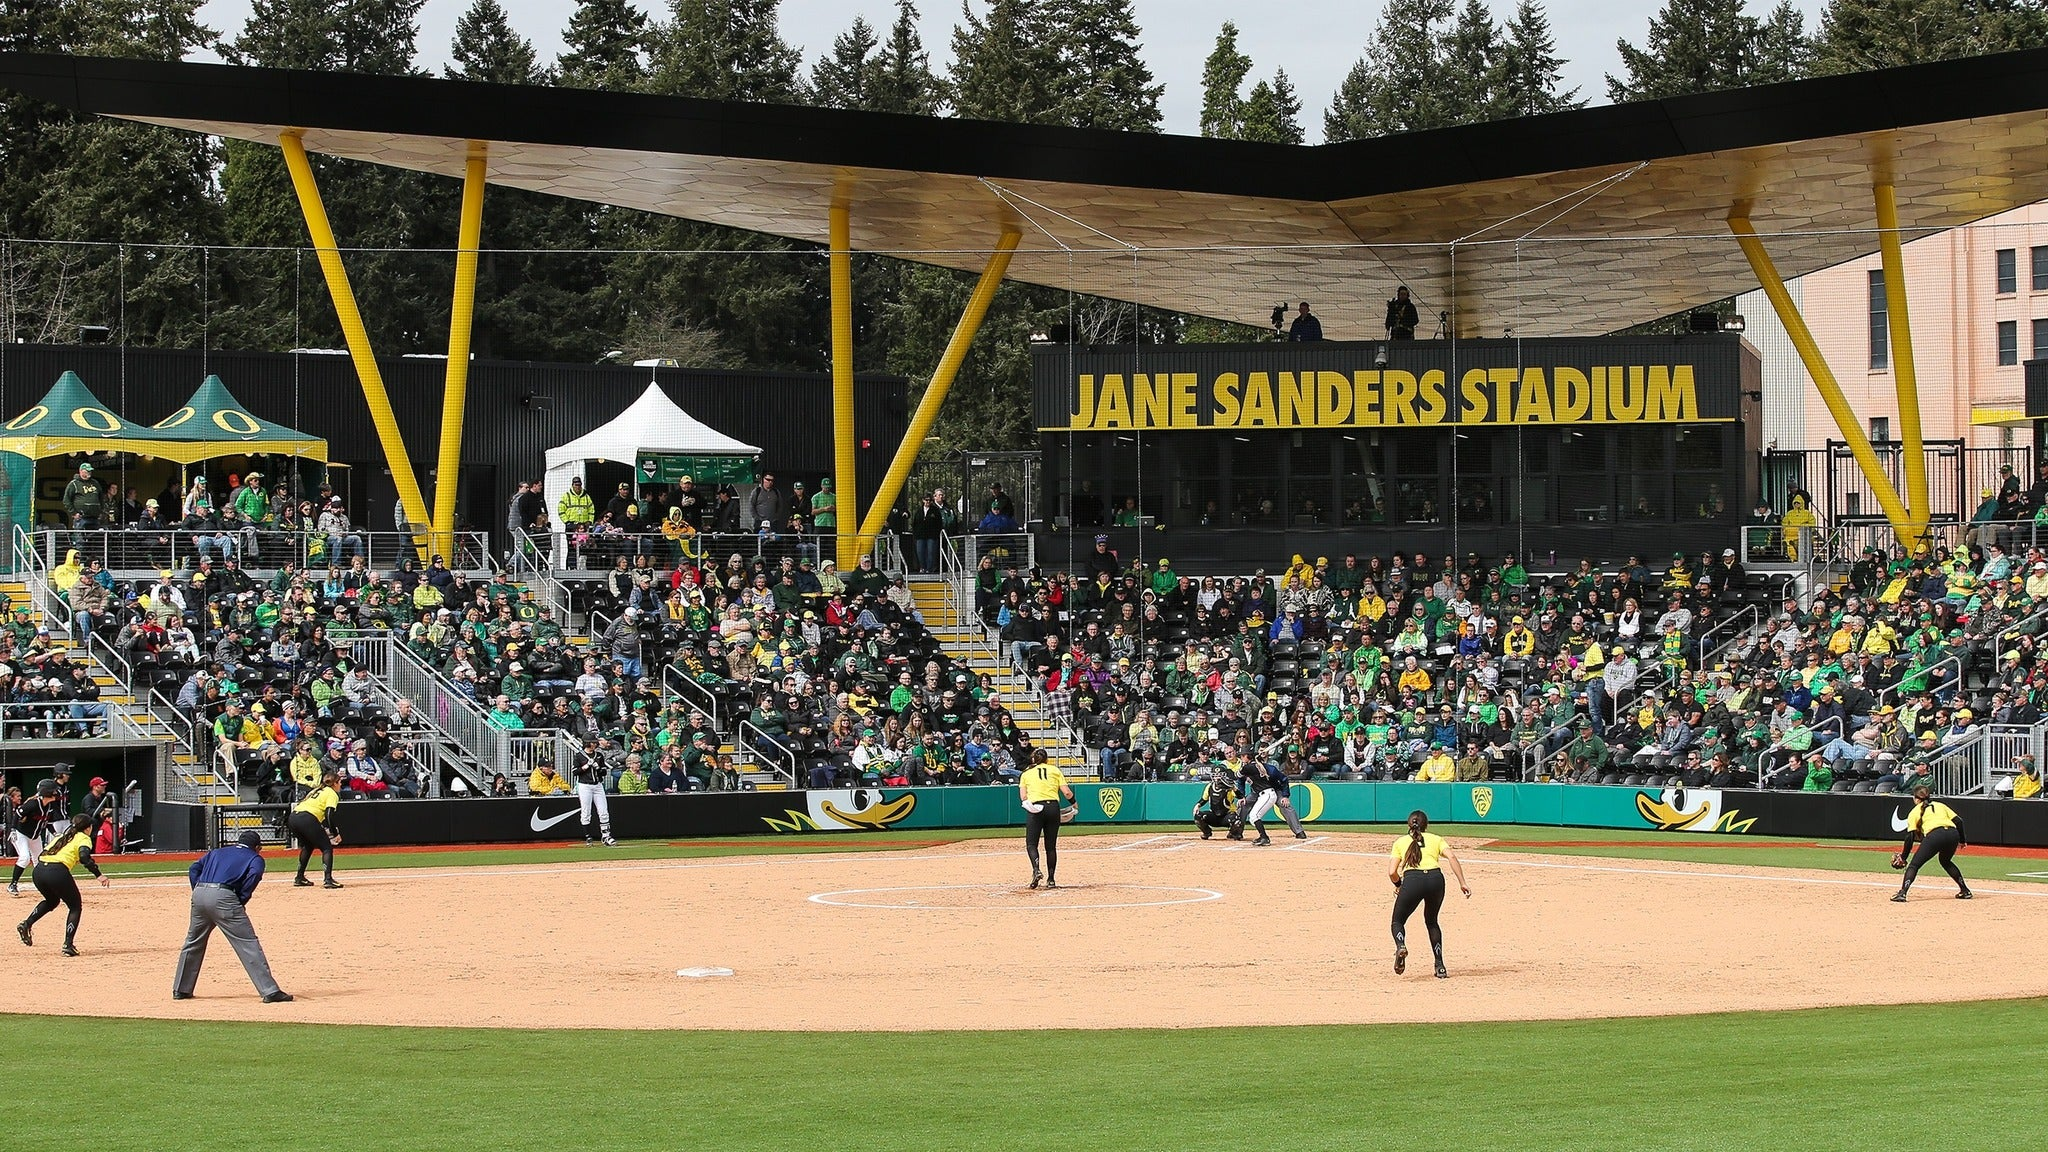 Oregon Ducks Softball vs. Arizona Wildcats Softball